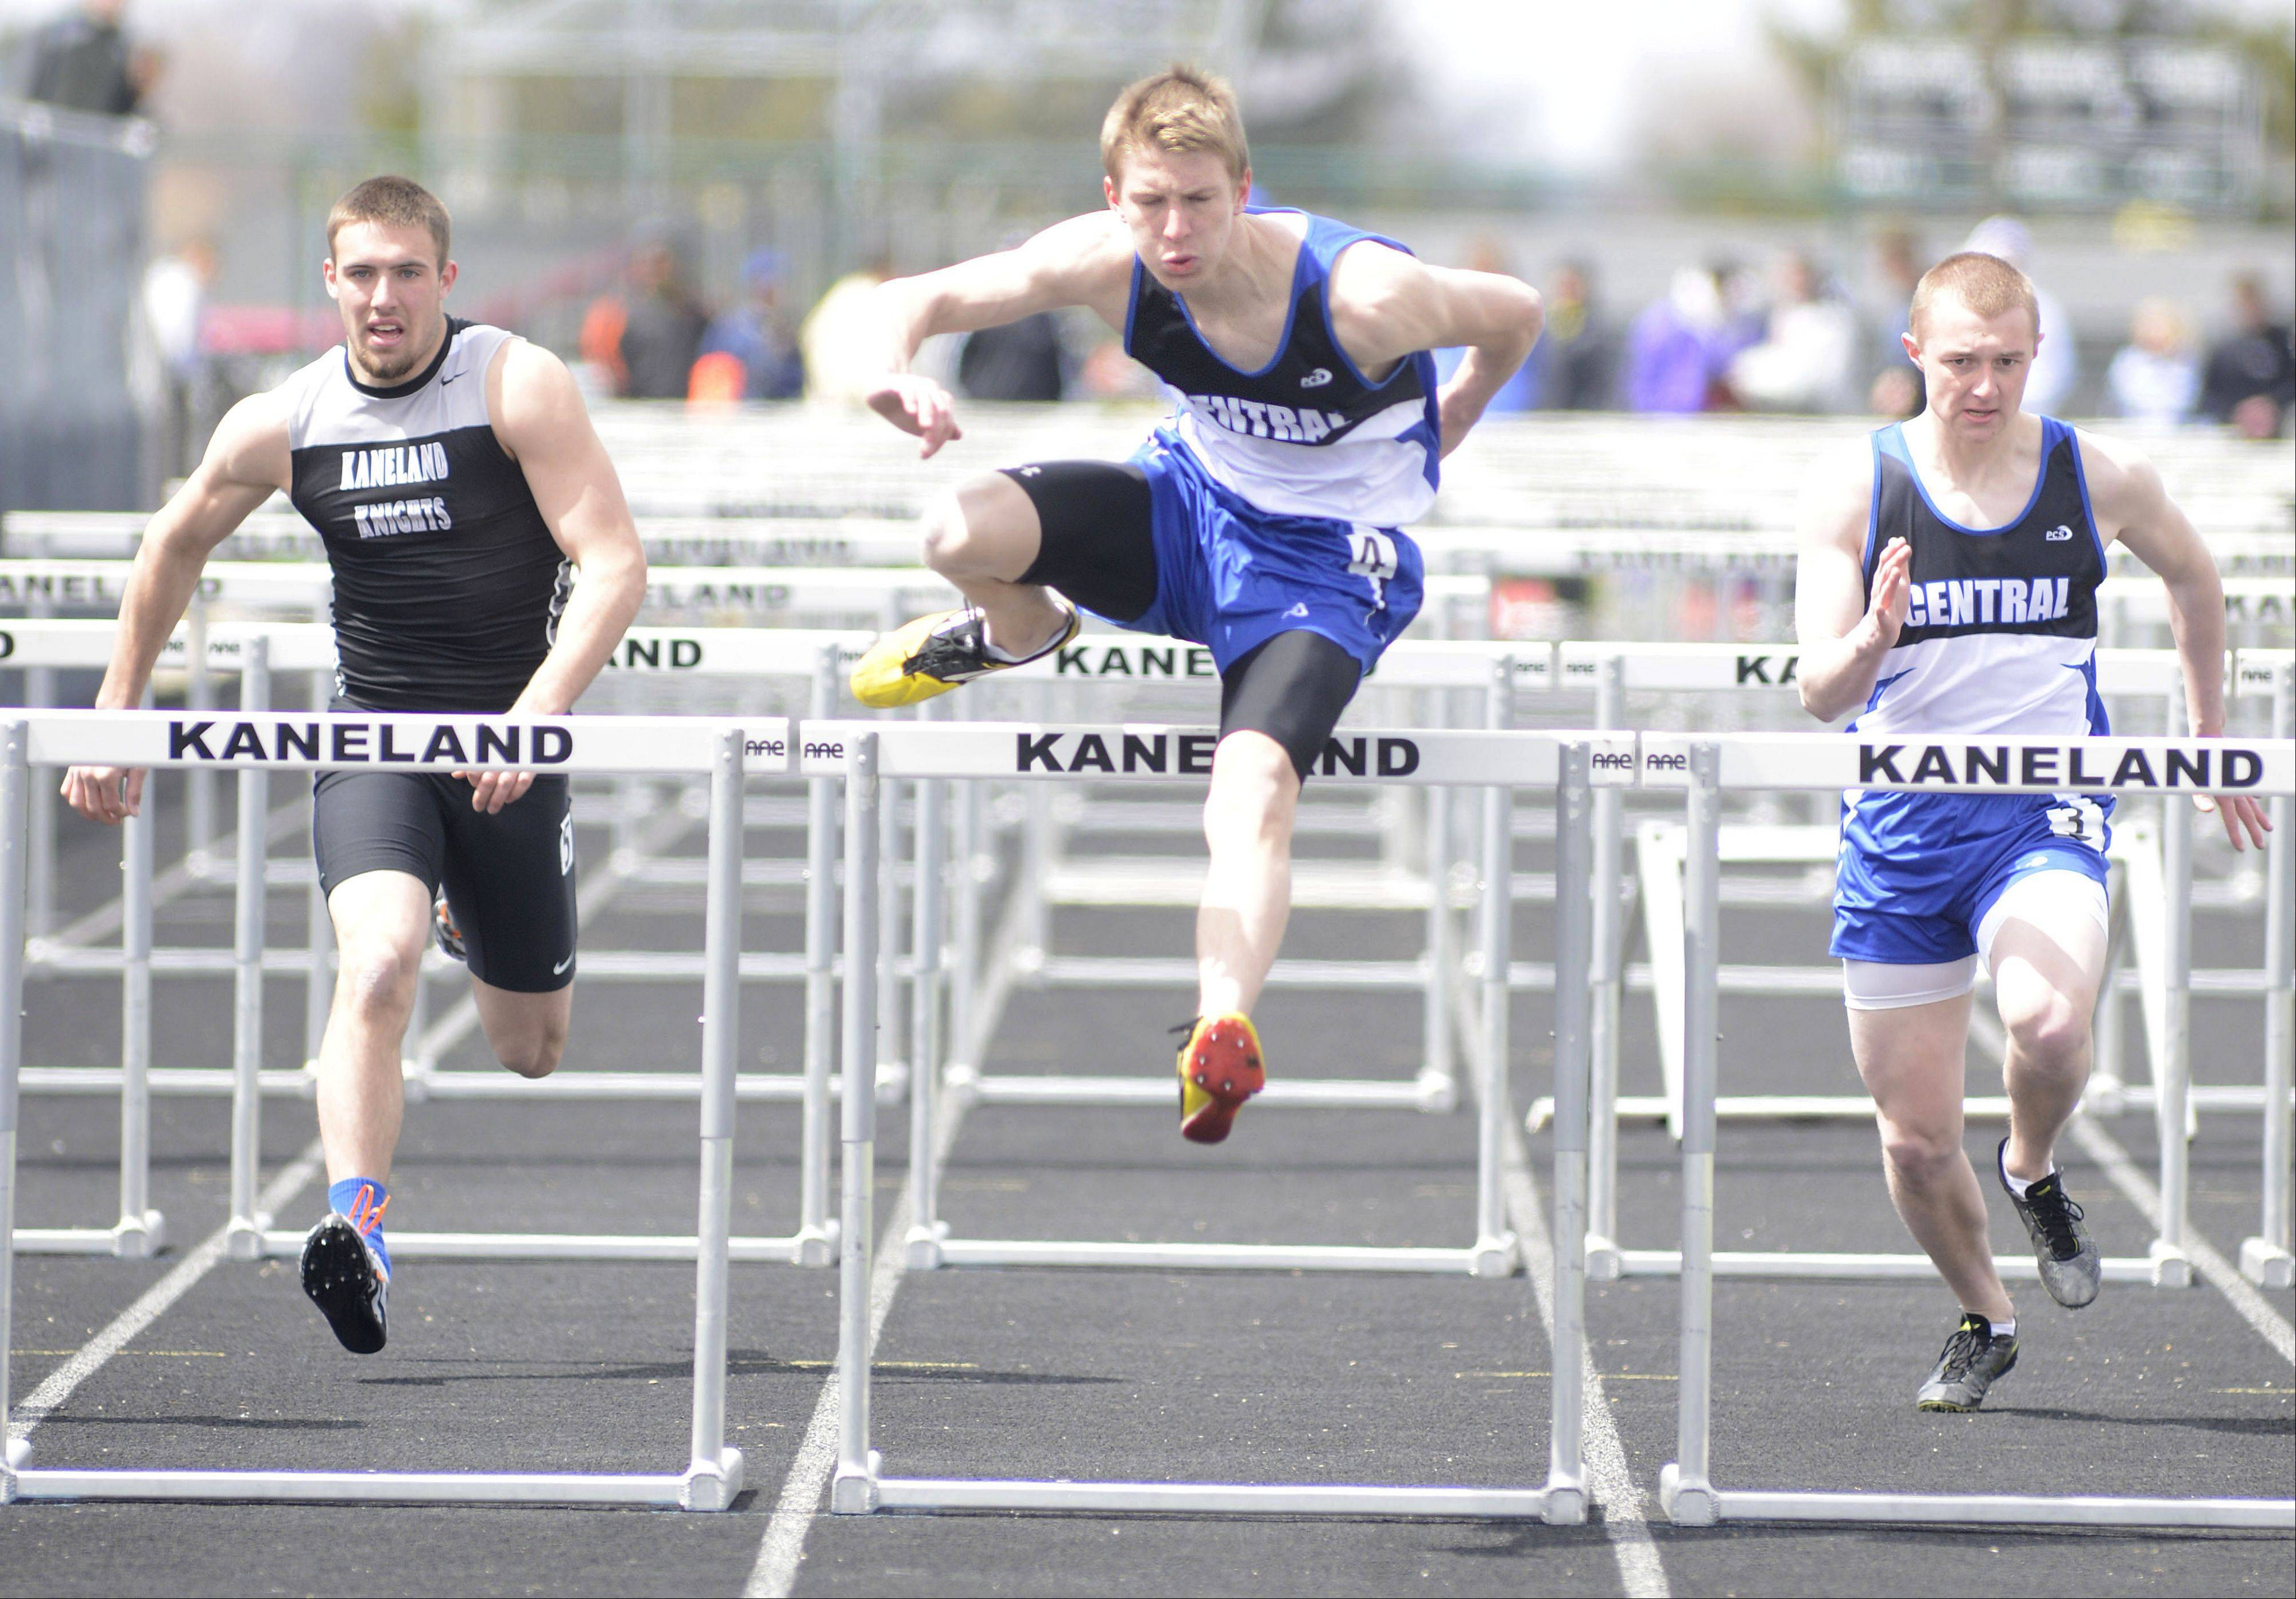 Burlington Central's Lucas Ege takes first in the 110 meter hurdles final at the Kaneland meet on Saturday, April 20.